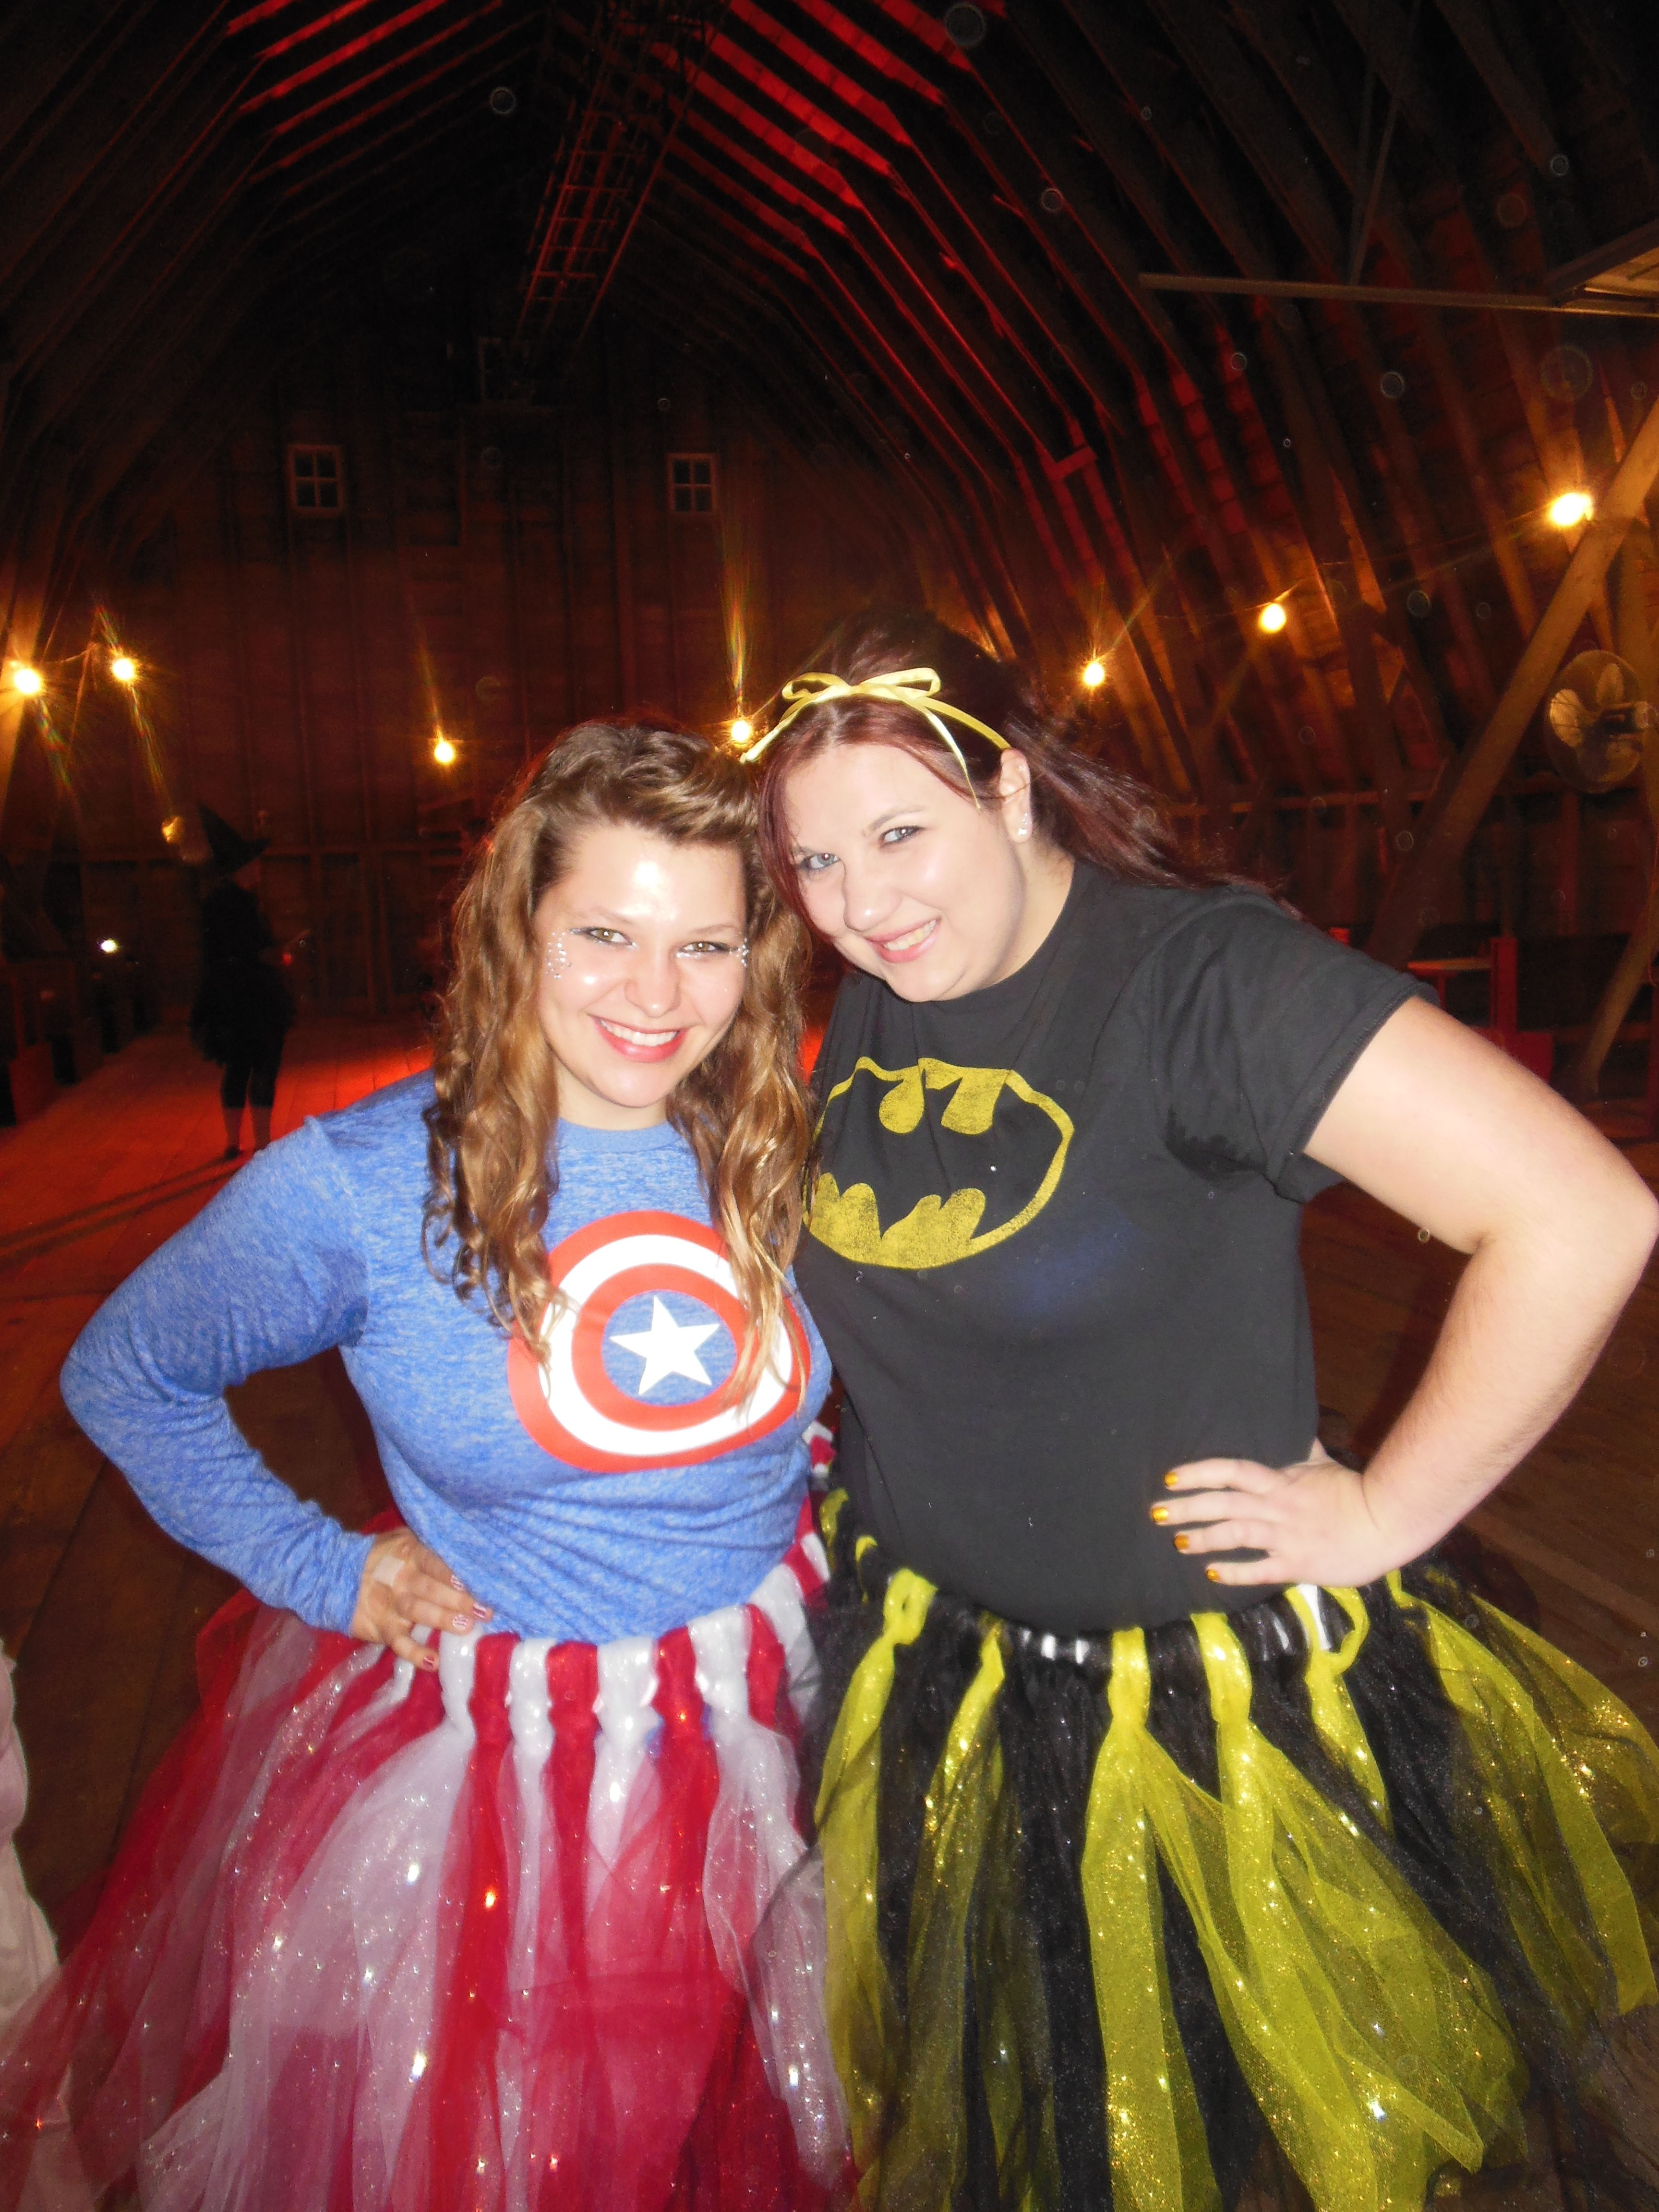 The definition of DIY halloween. We made our own tutus and